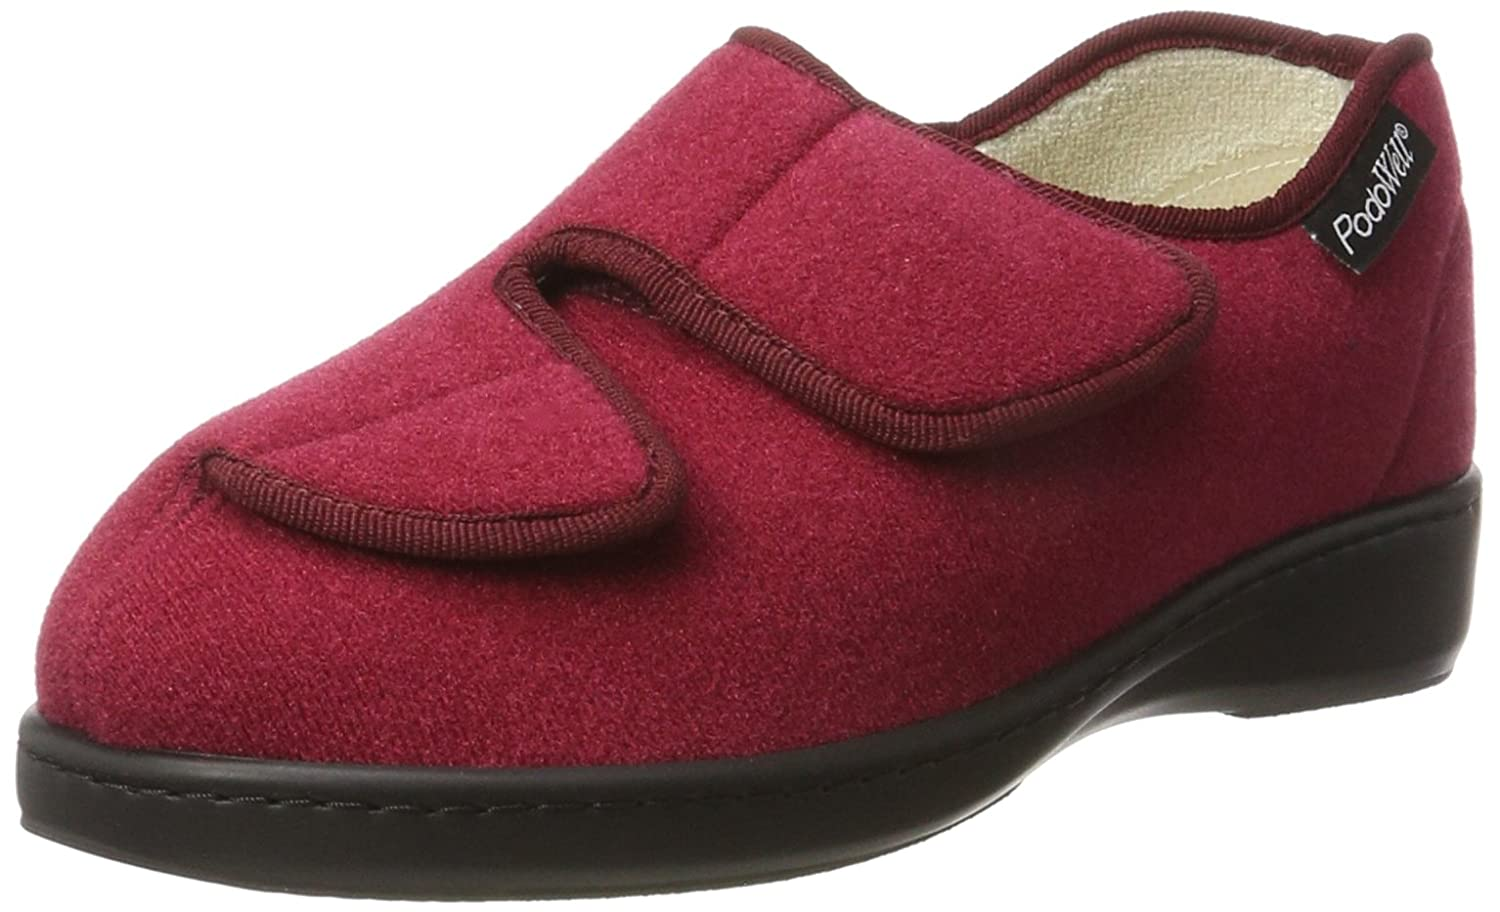 Podowell Athos, Podowell (Bordo Chaussons Bas B00ZP324CO Mixte Adulte (Bordo 7107330) d0c4f75 - latesttechnology.space